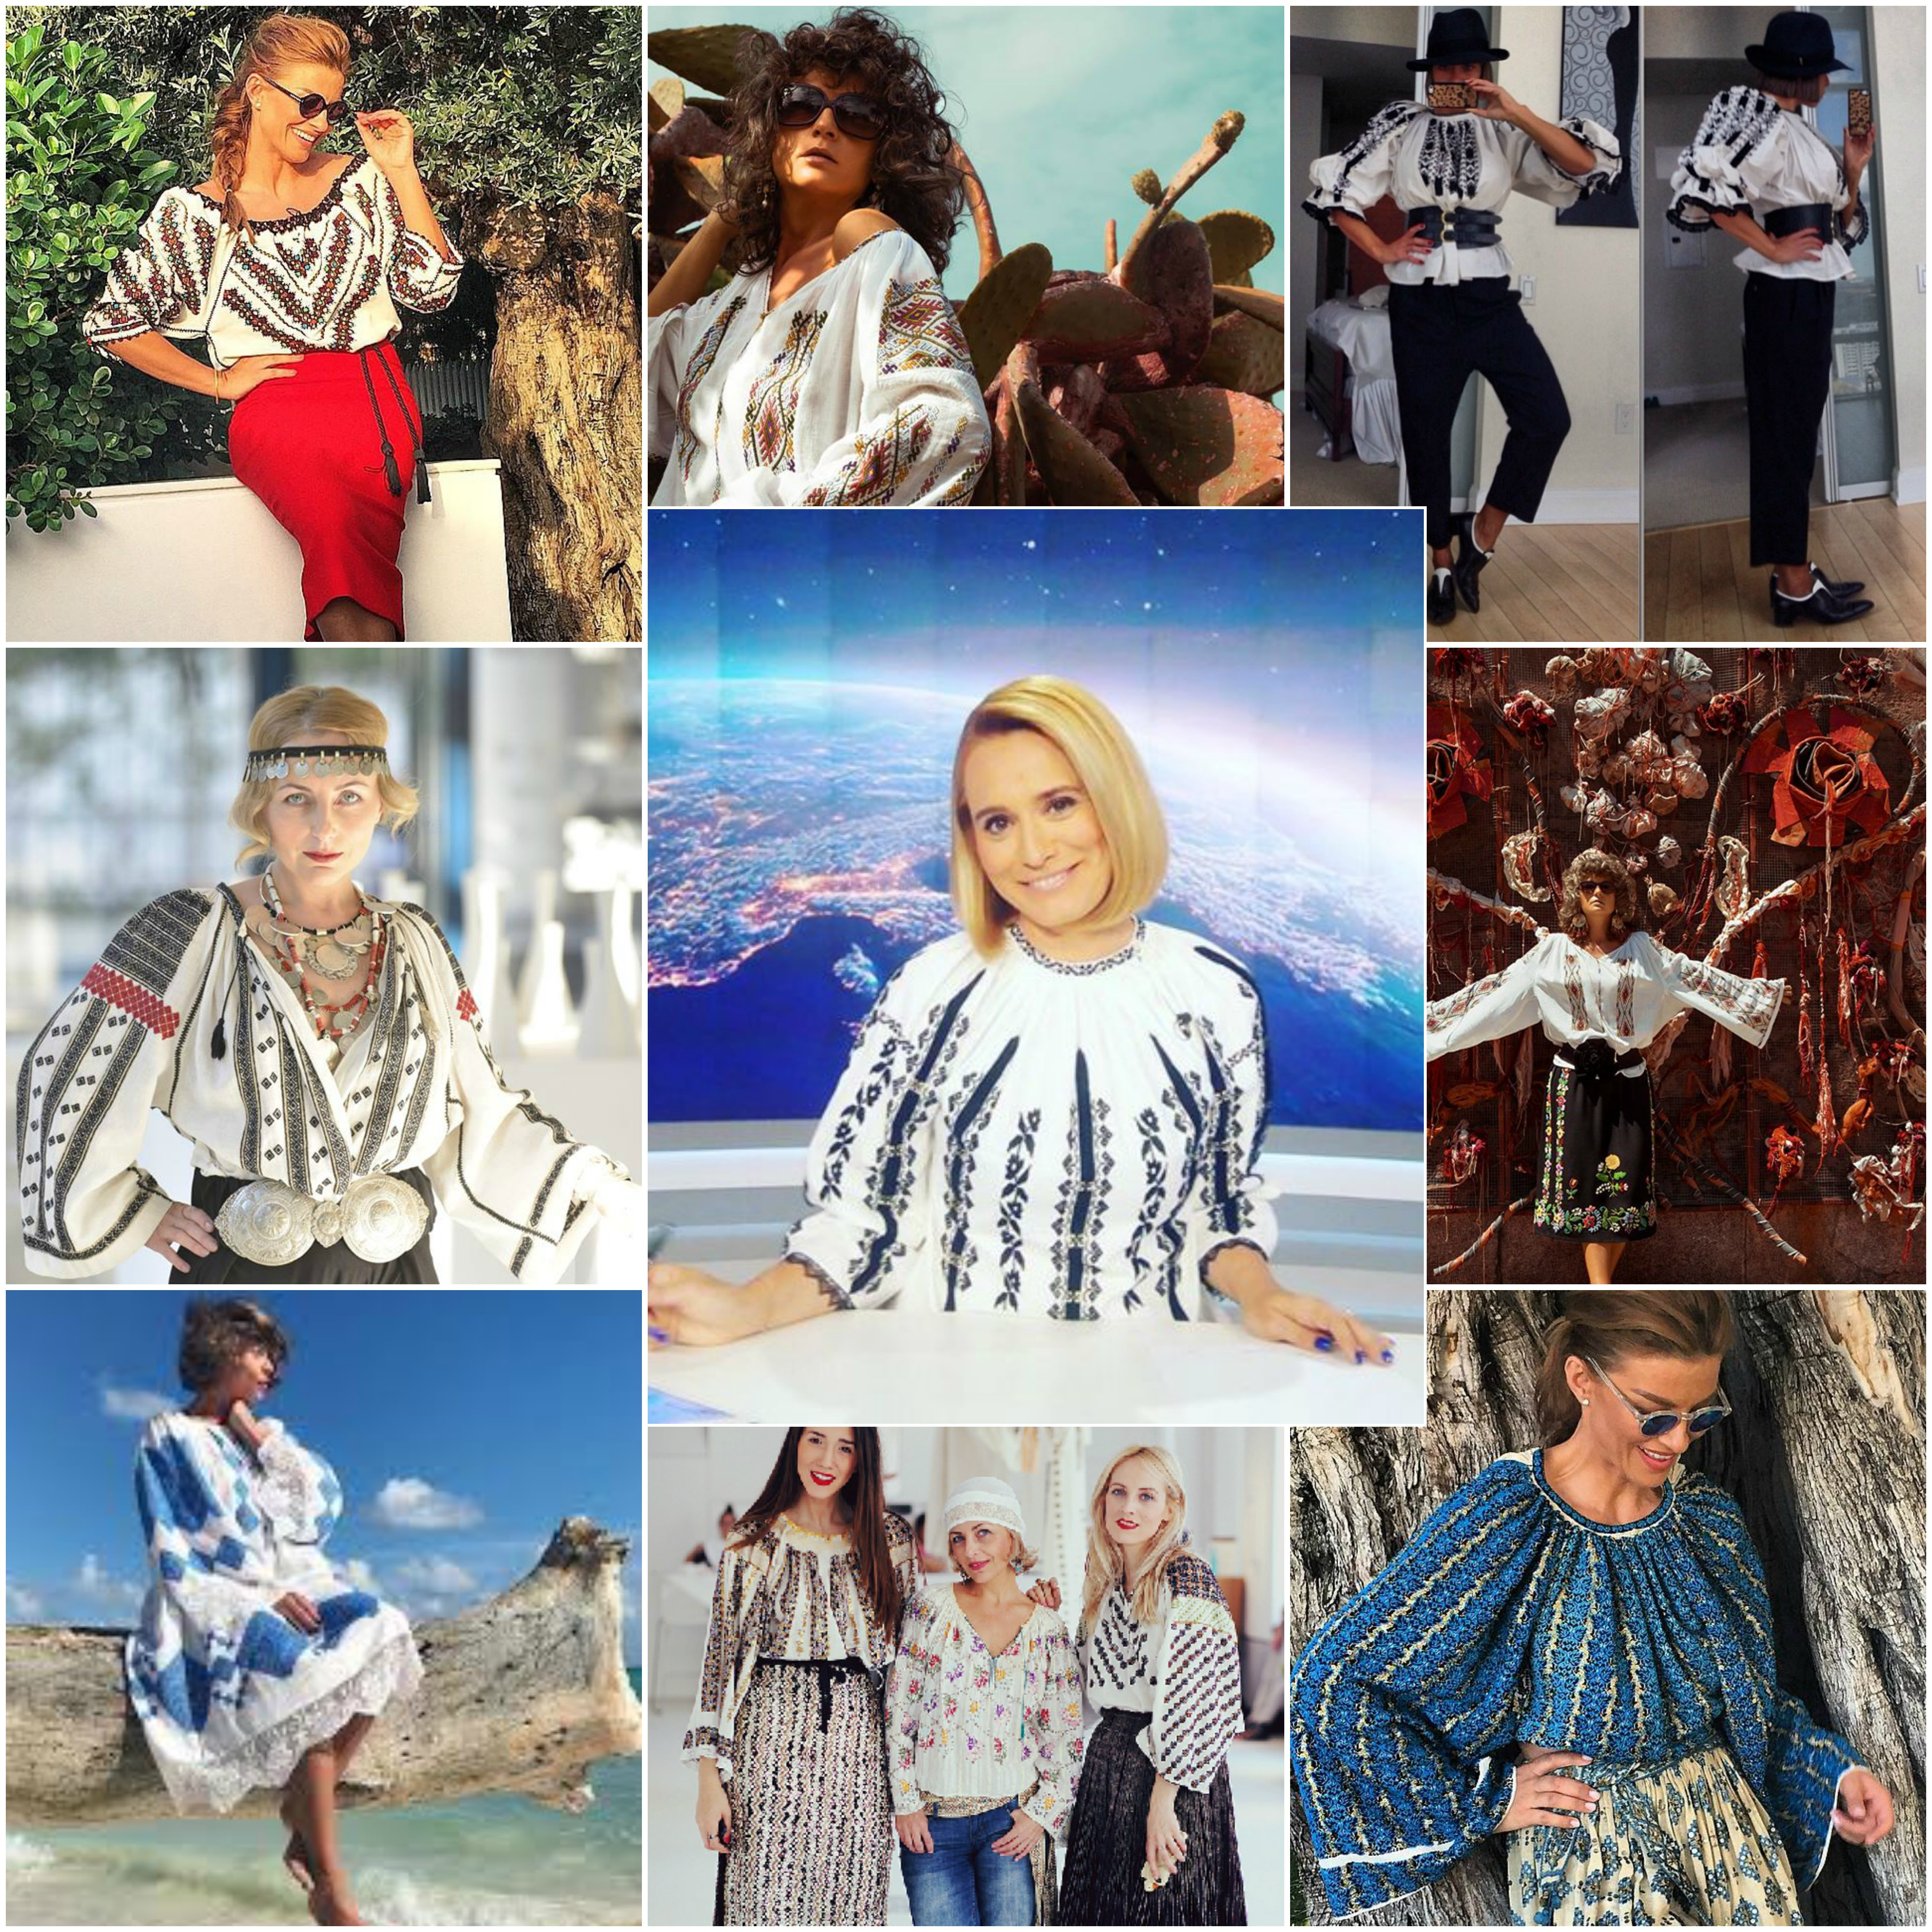 Who are the most influential Romanian Blouse Influencers in Romania?